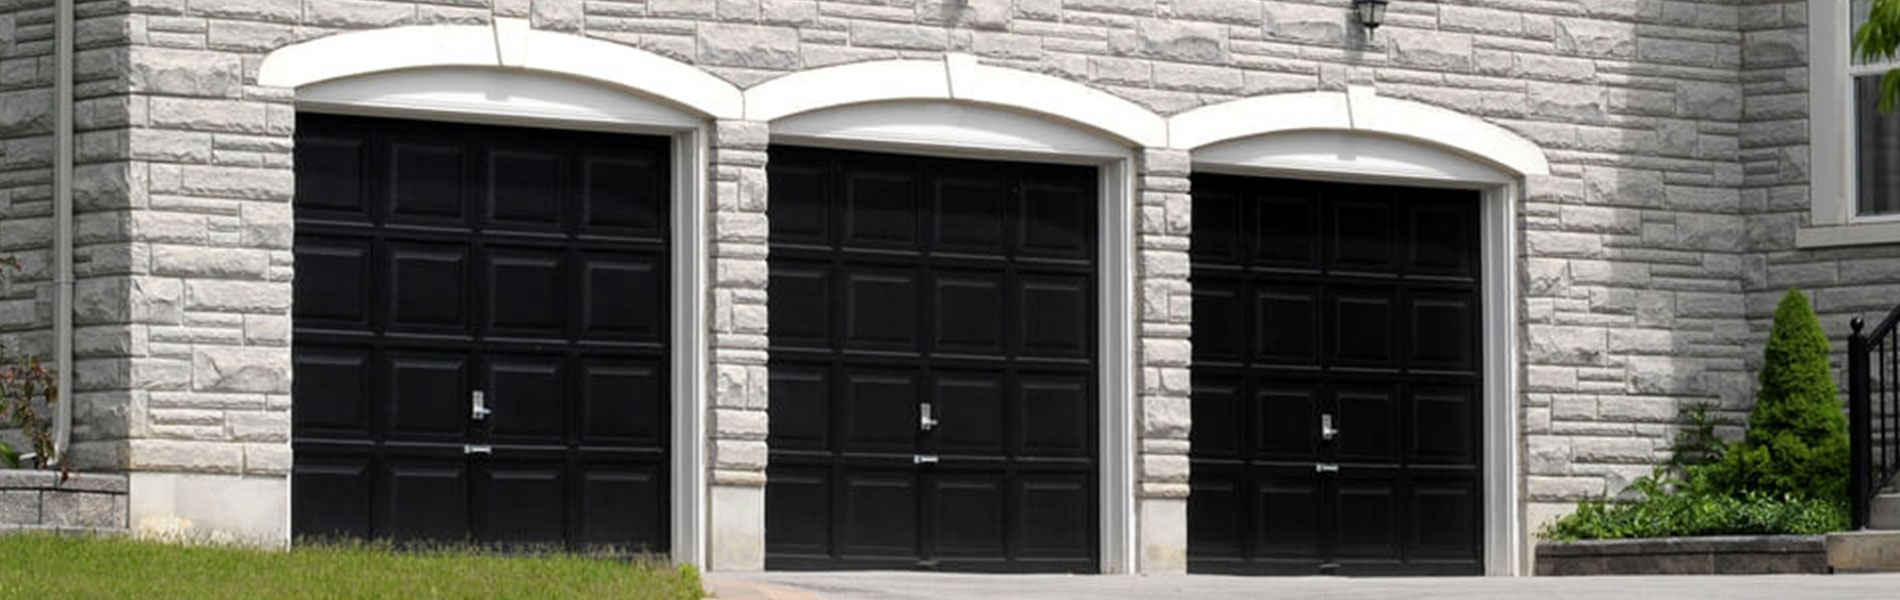 Neighborhood Garage Door Service, West Palm Beach, FL 561-981-6337